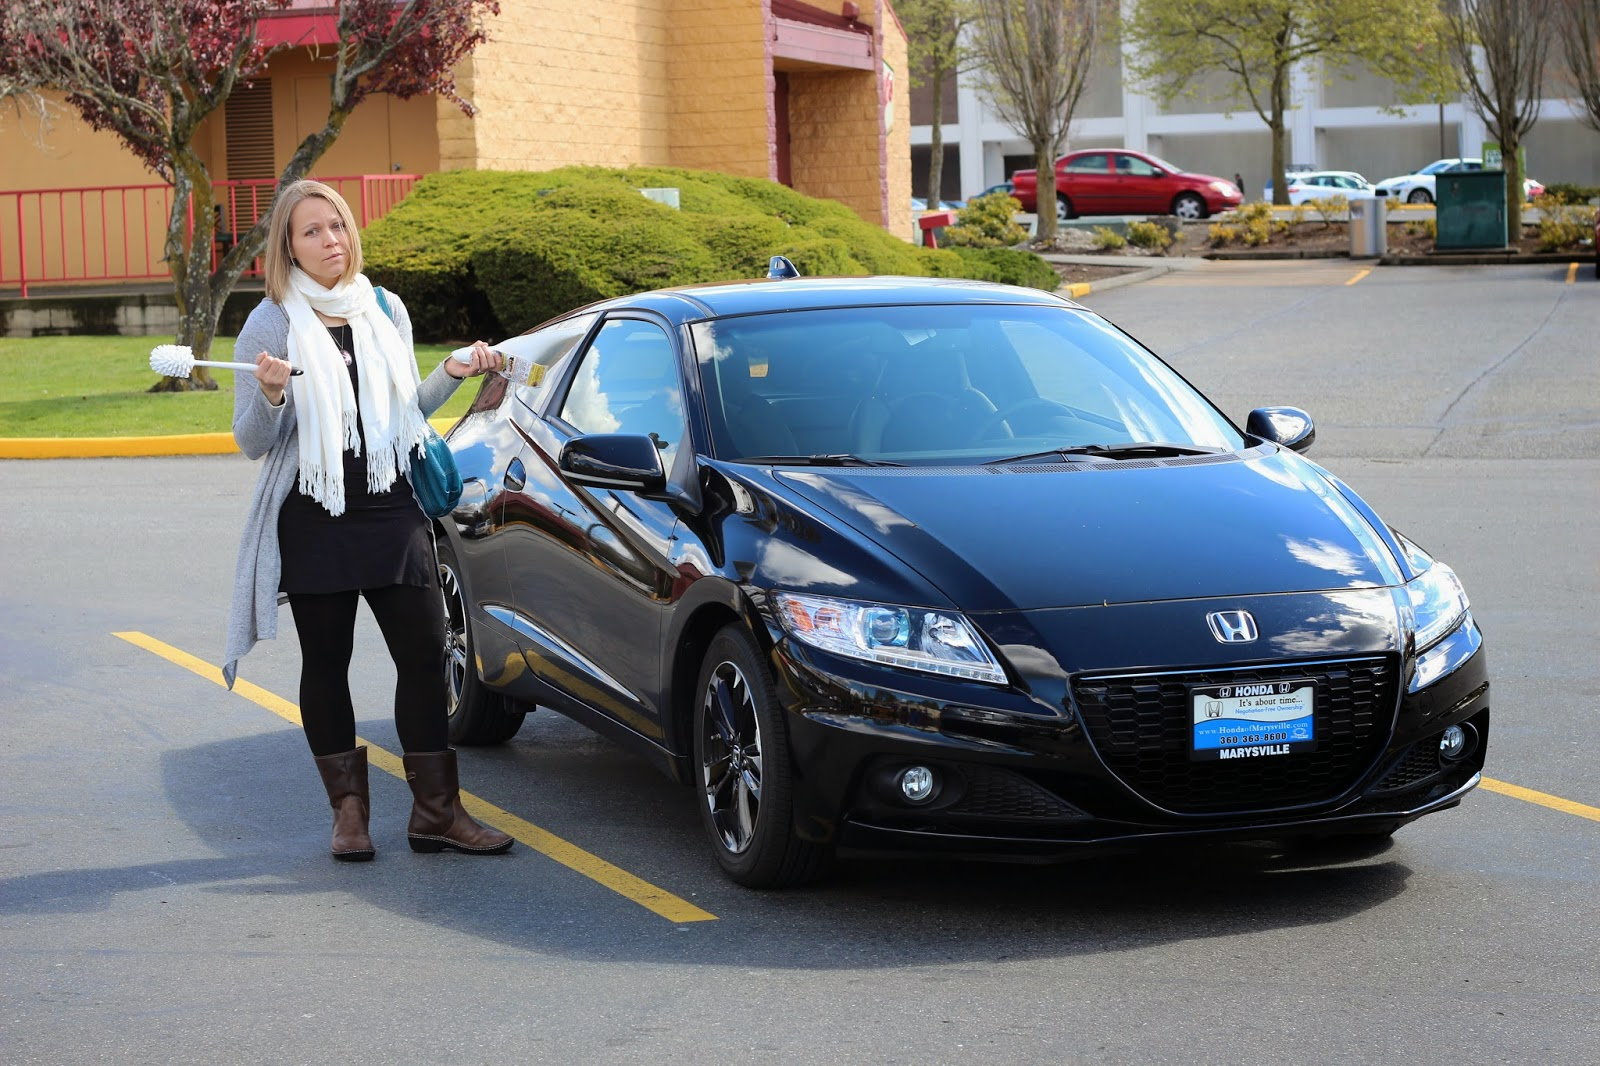 Lovely Meg W Winston The 2017 Honda Crz Ex 6sp Manual